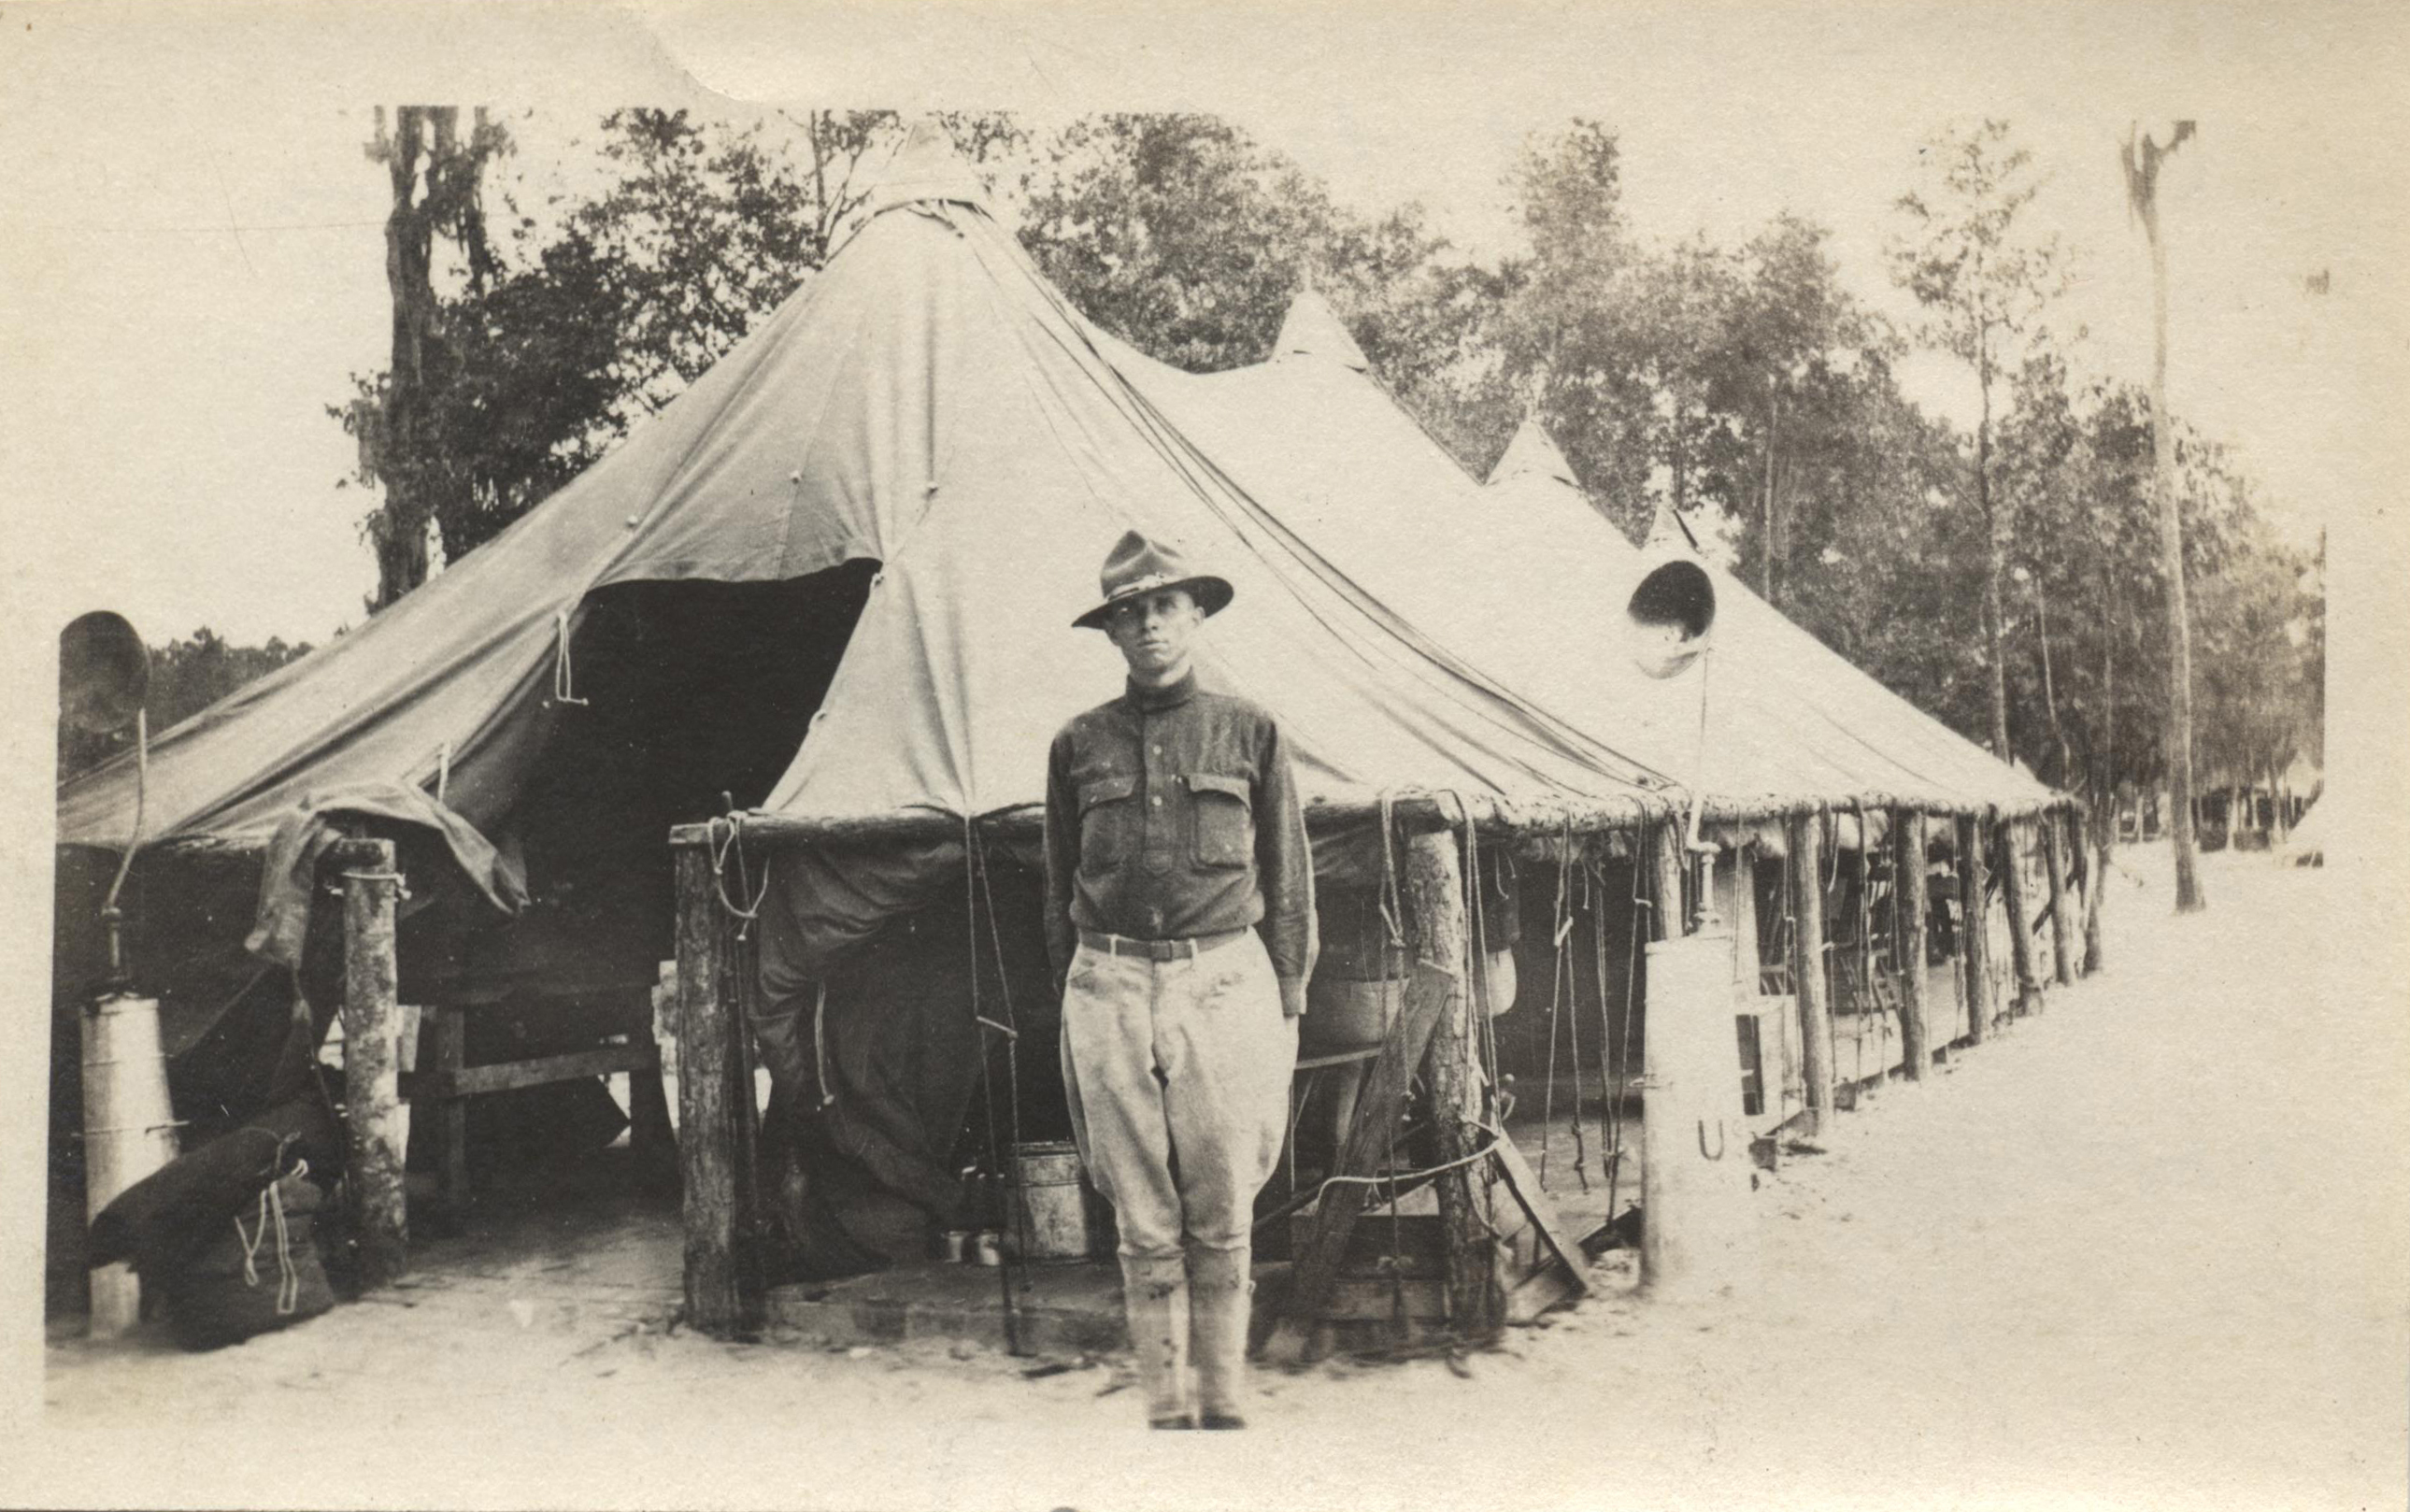 Historic photograph of a soldier standing in front of a tent.